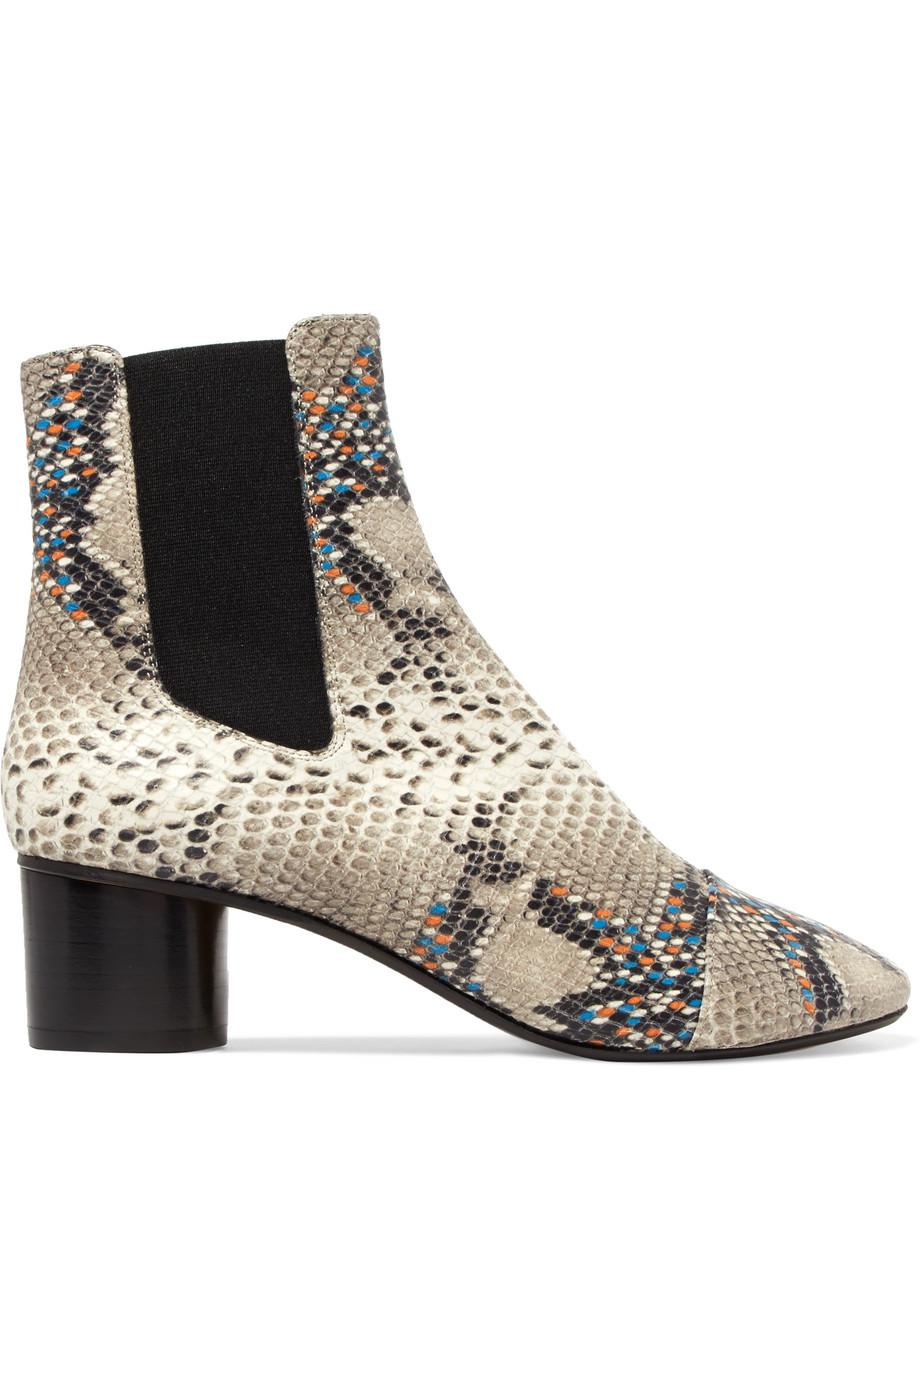 snake print ankle boots - Grey Isabel Marant Discount From China a7Xg7ei